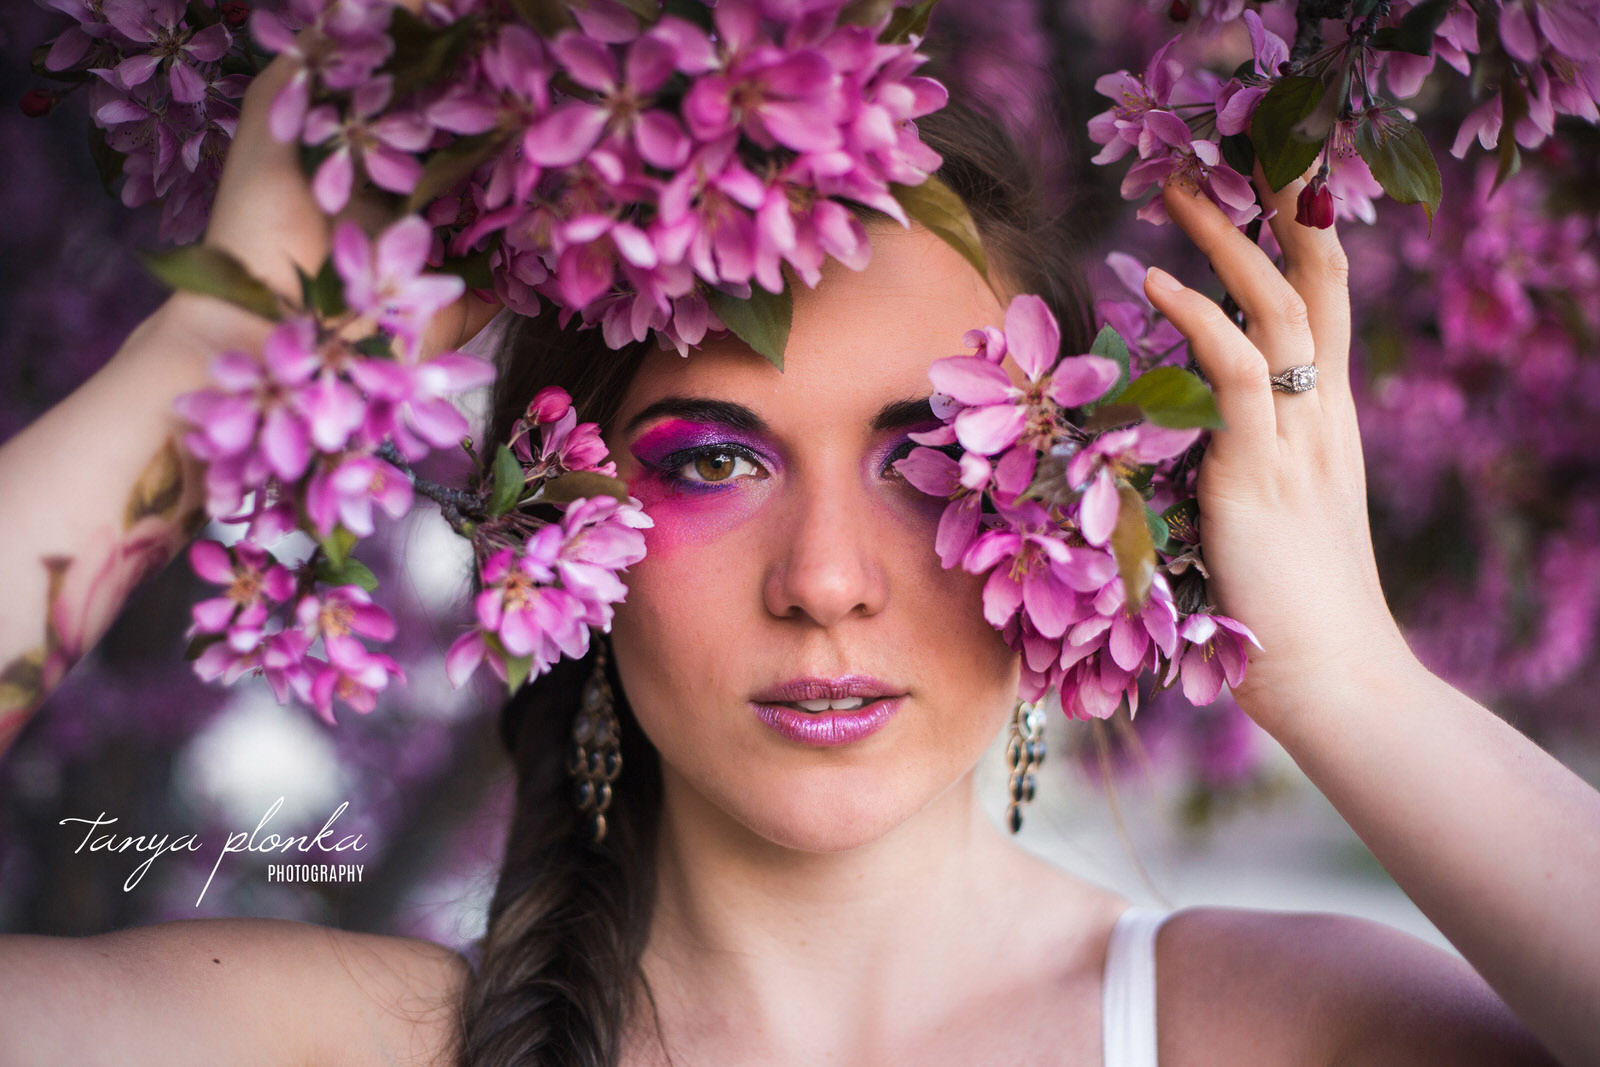 woman in pink eye shadow peeks out from pink flower blossoms